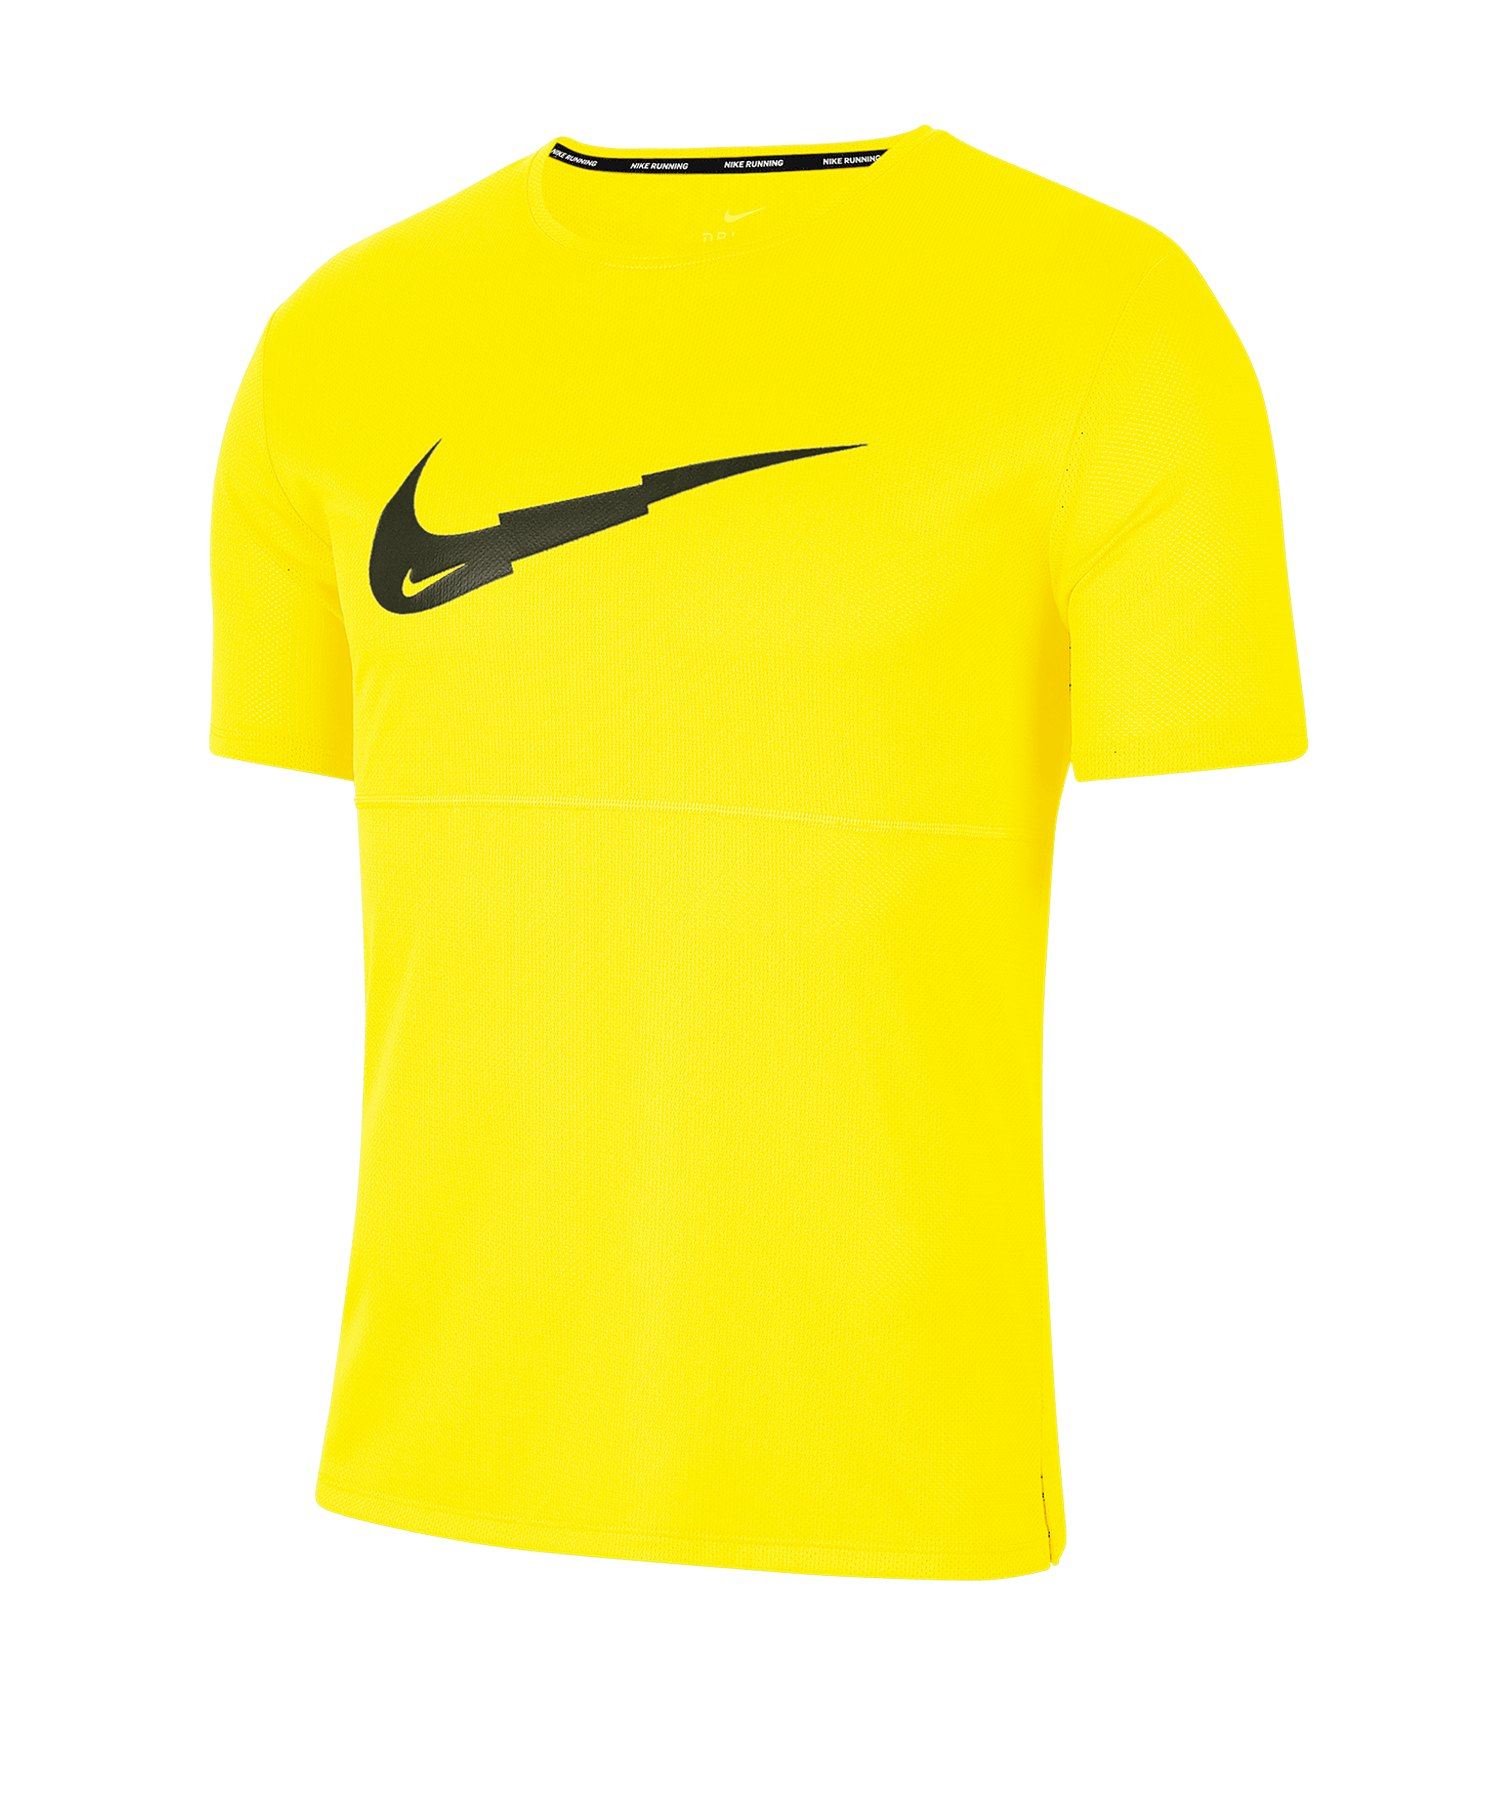 Nike Breathe T-Shirt Running Gelb F731 - gelb